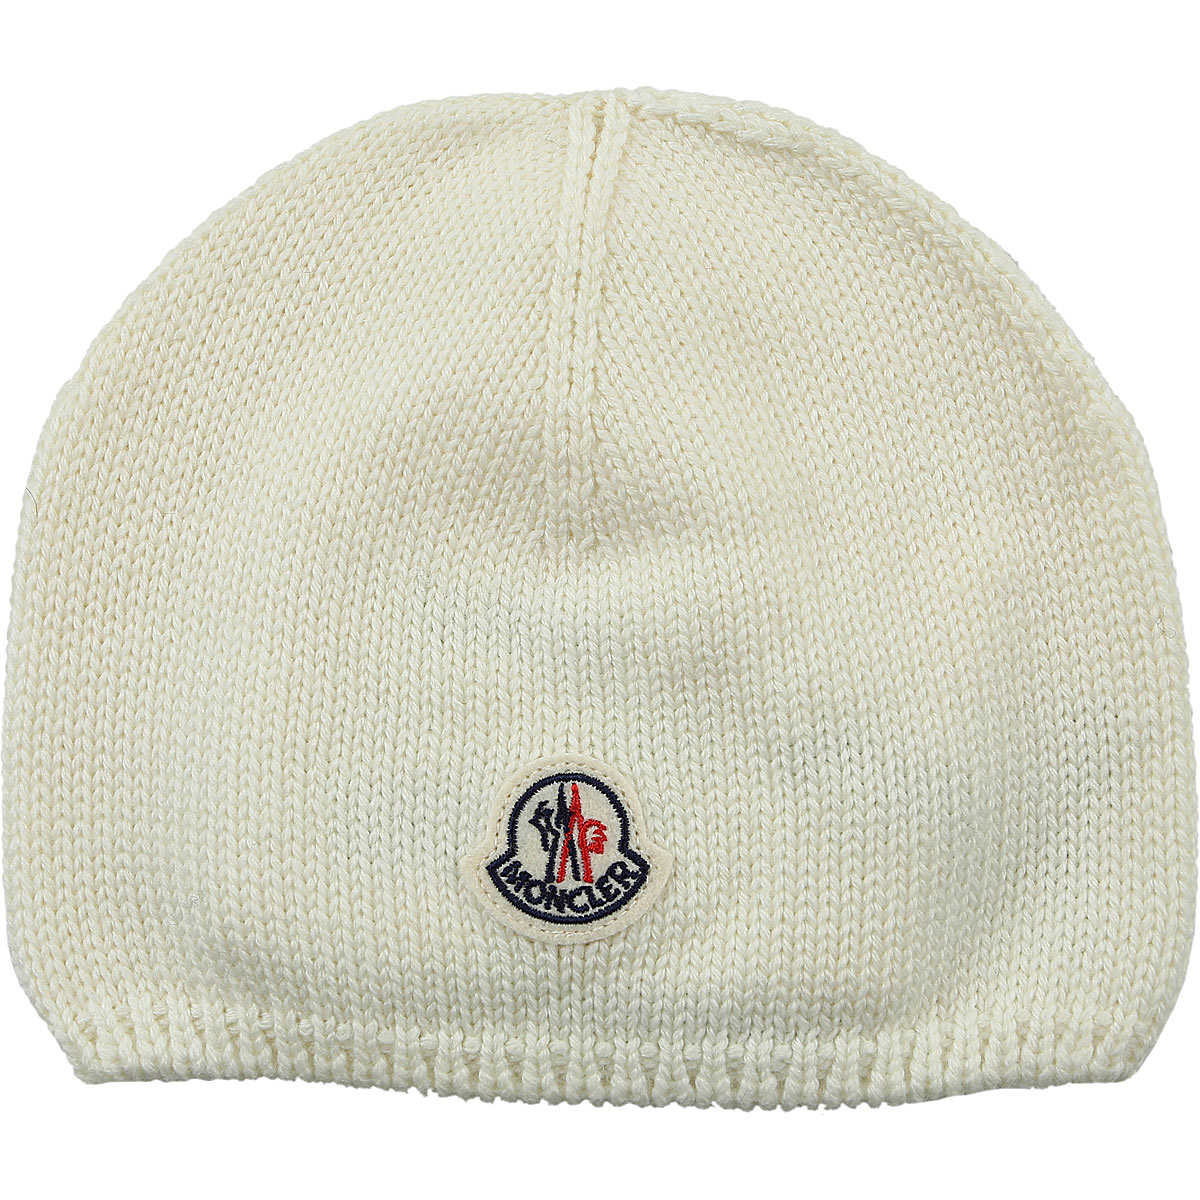 Moncler Kids Hats for Girls On Sale in Outlet Cream - GOOFASH - Womens HATS